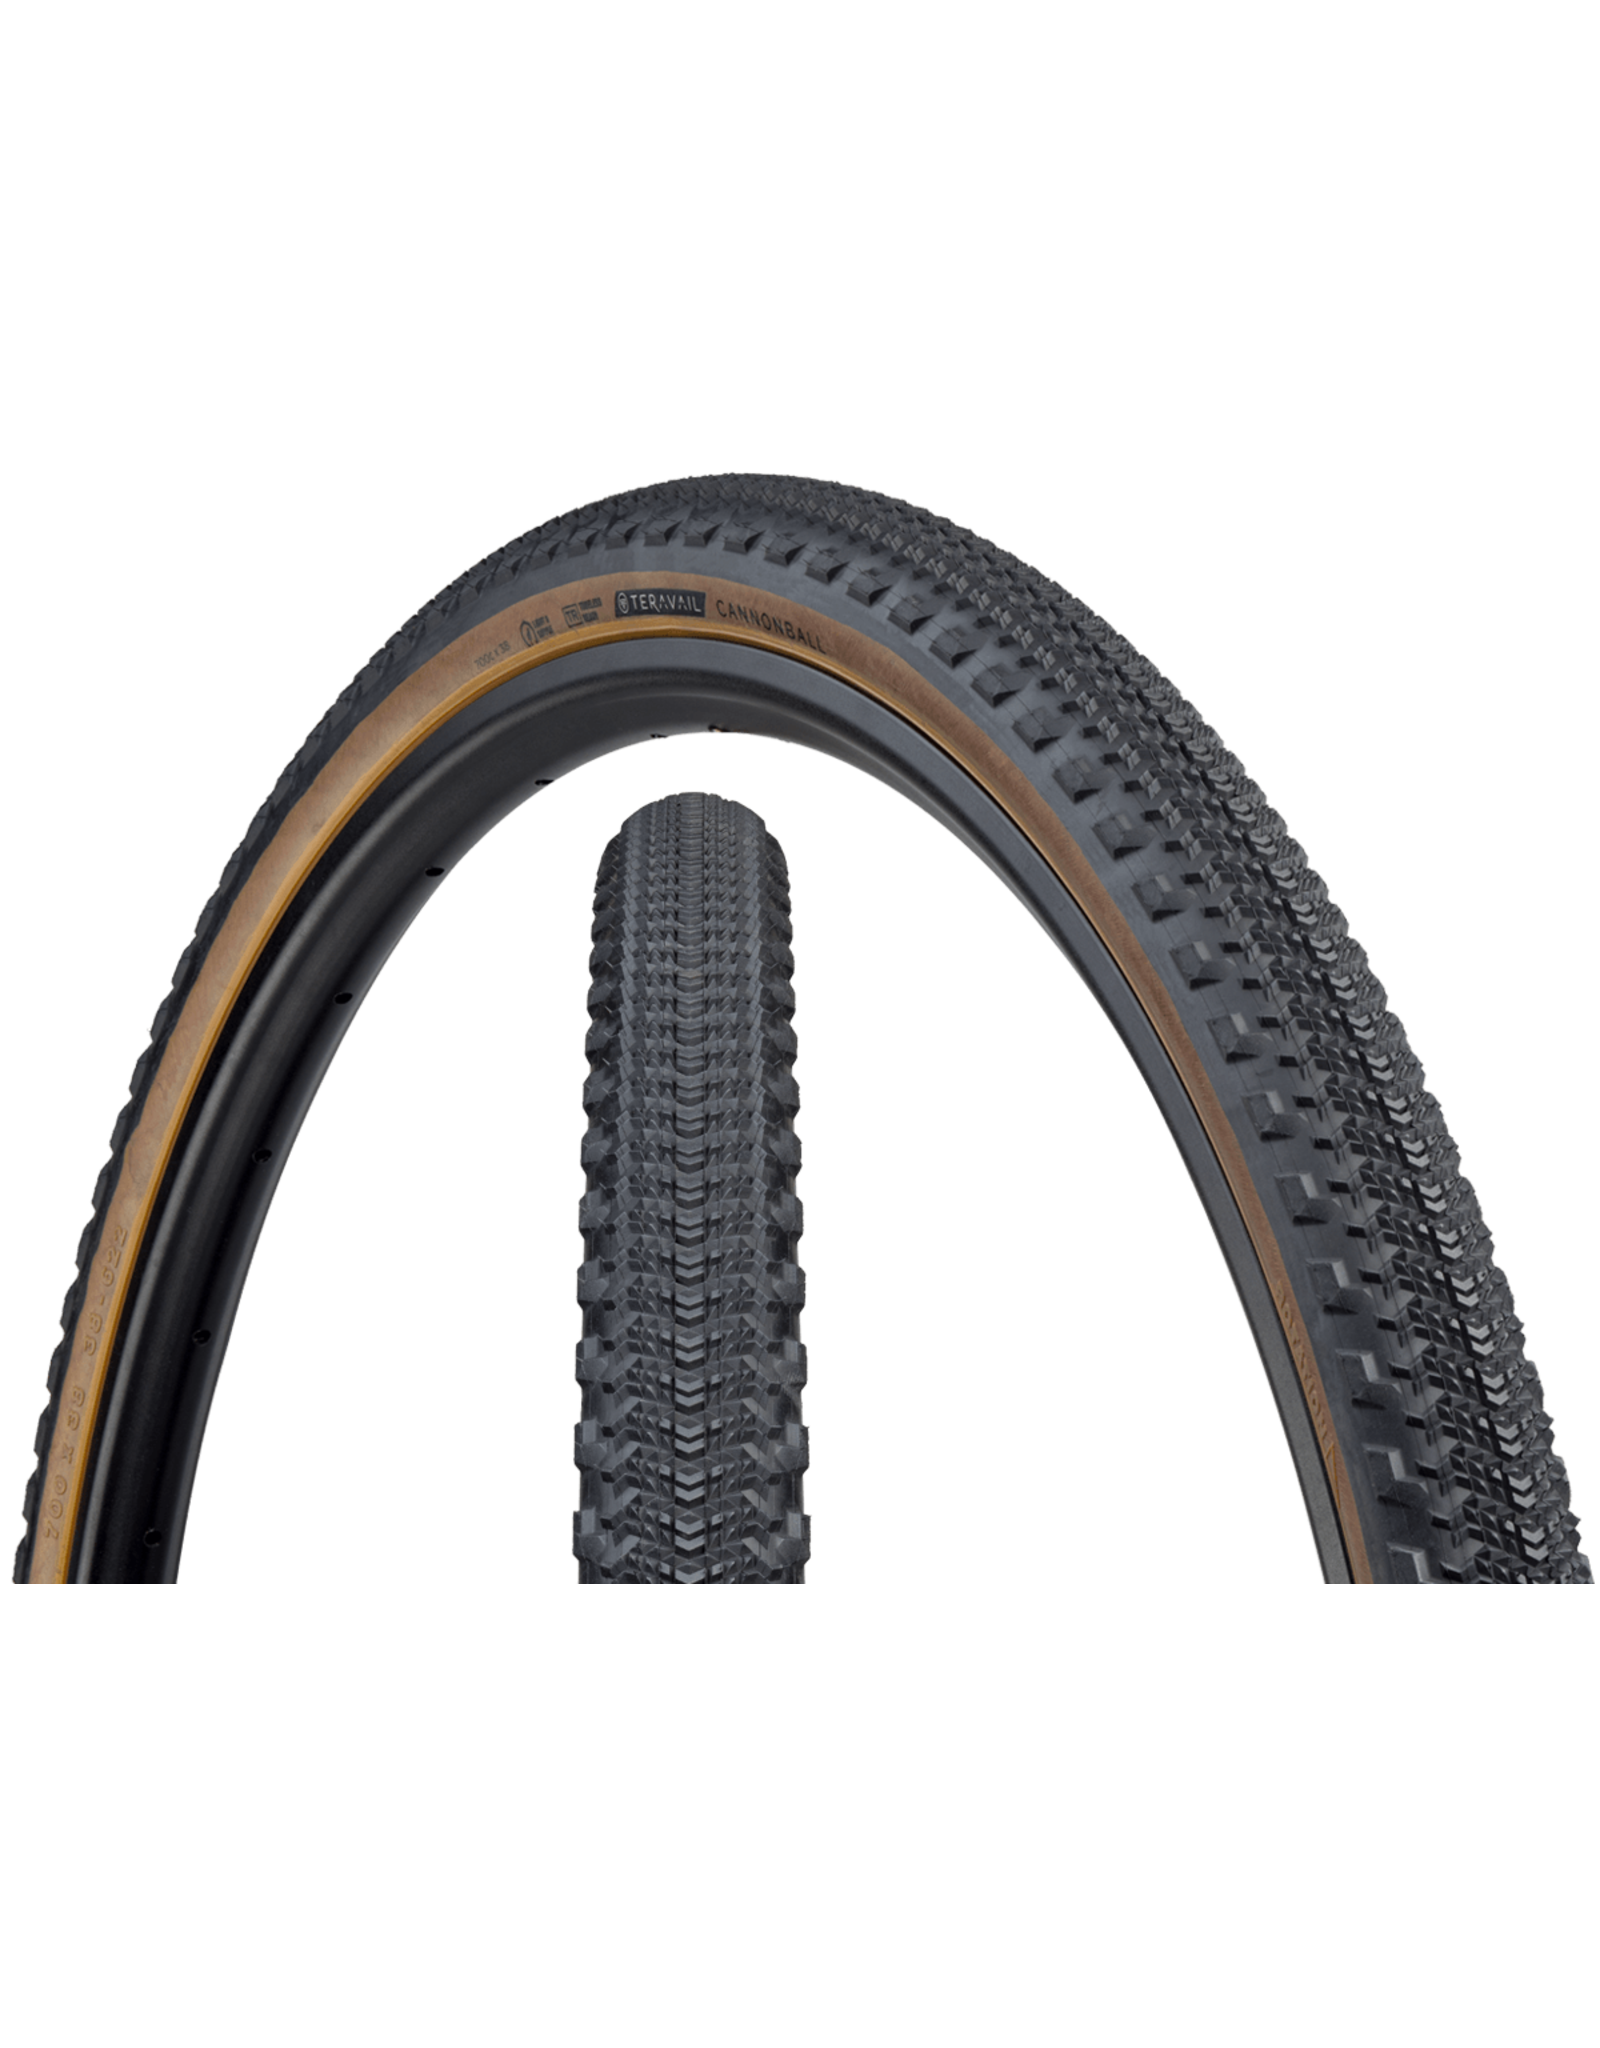 Teravail Teravail Cannonball Tire - 700 x 38, Tubeless, Folding, Black, Light and Supple